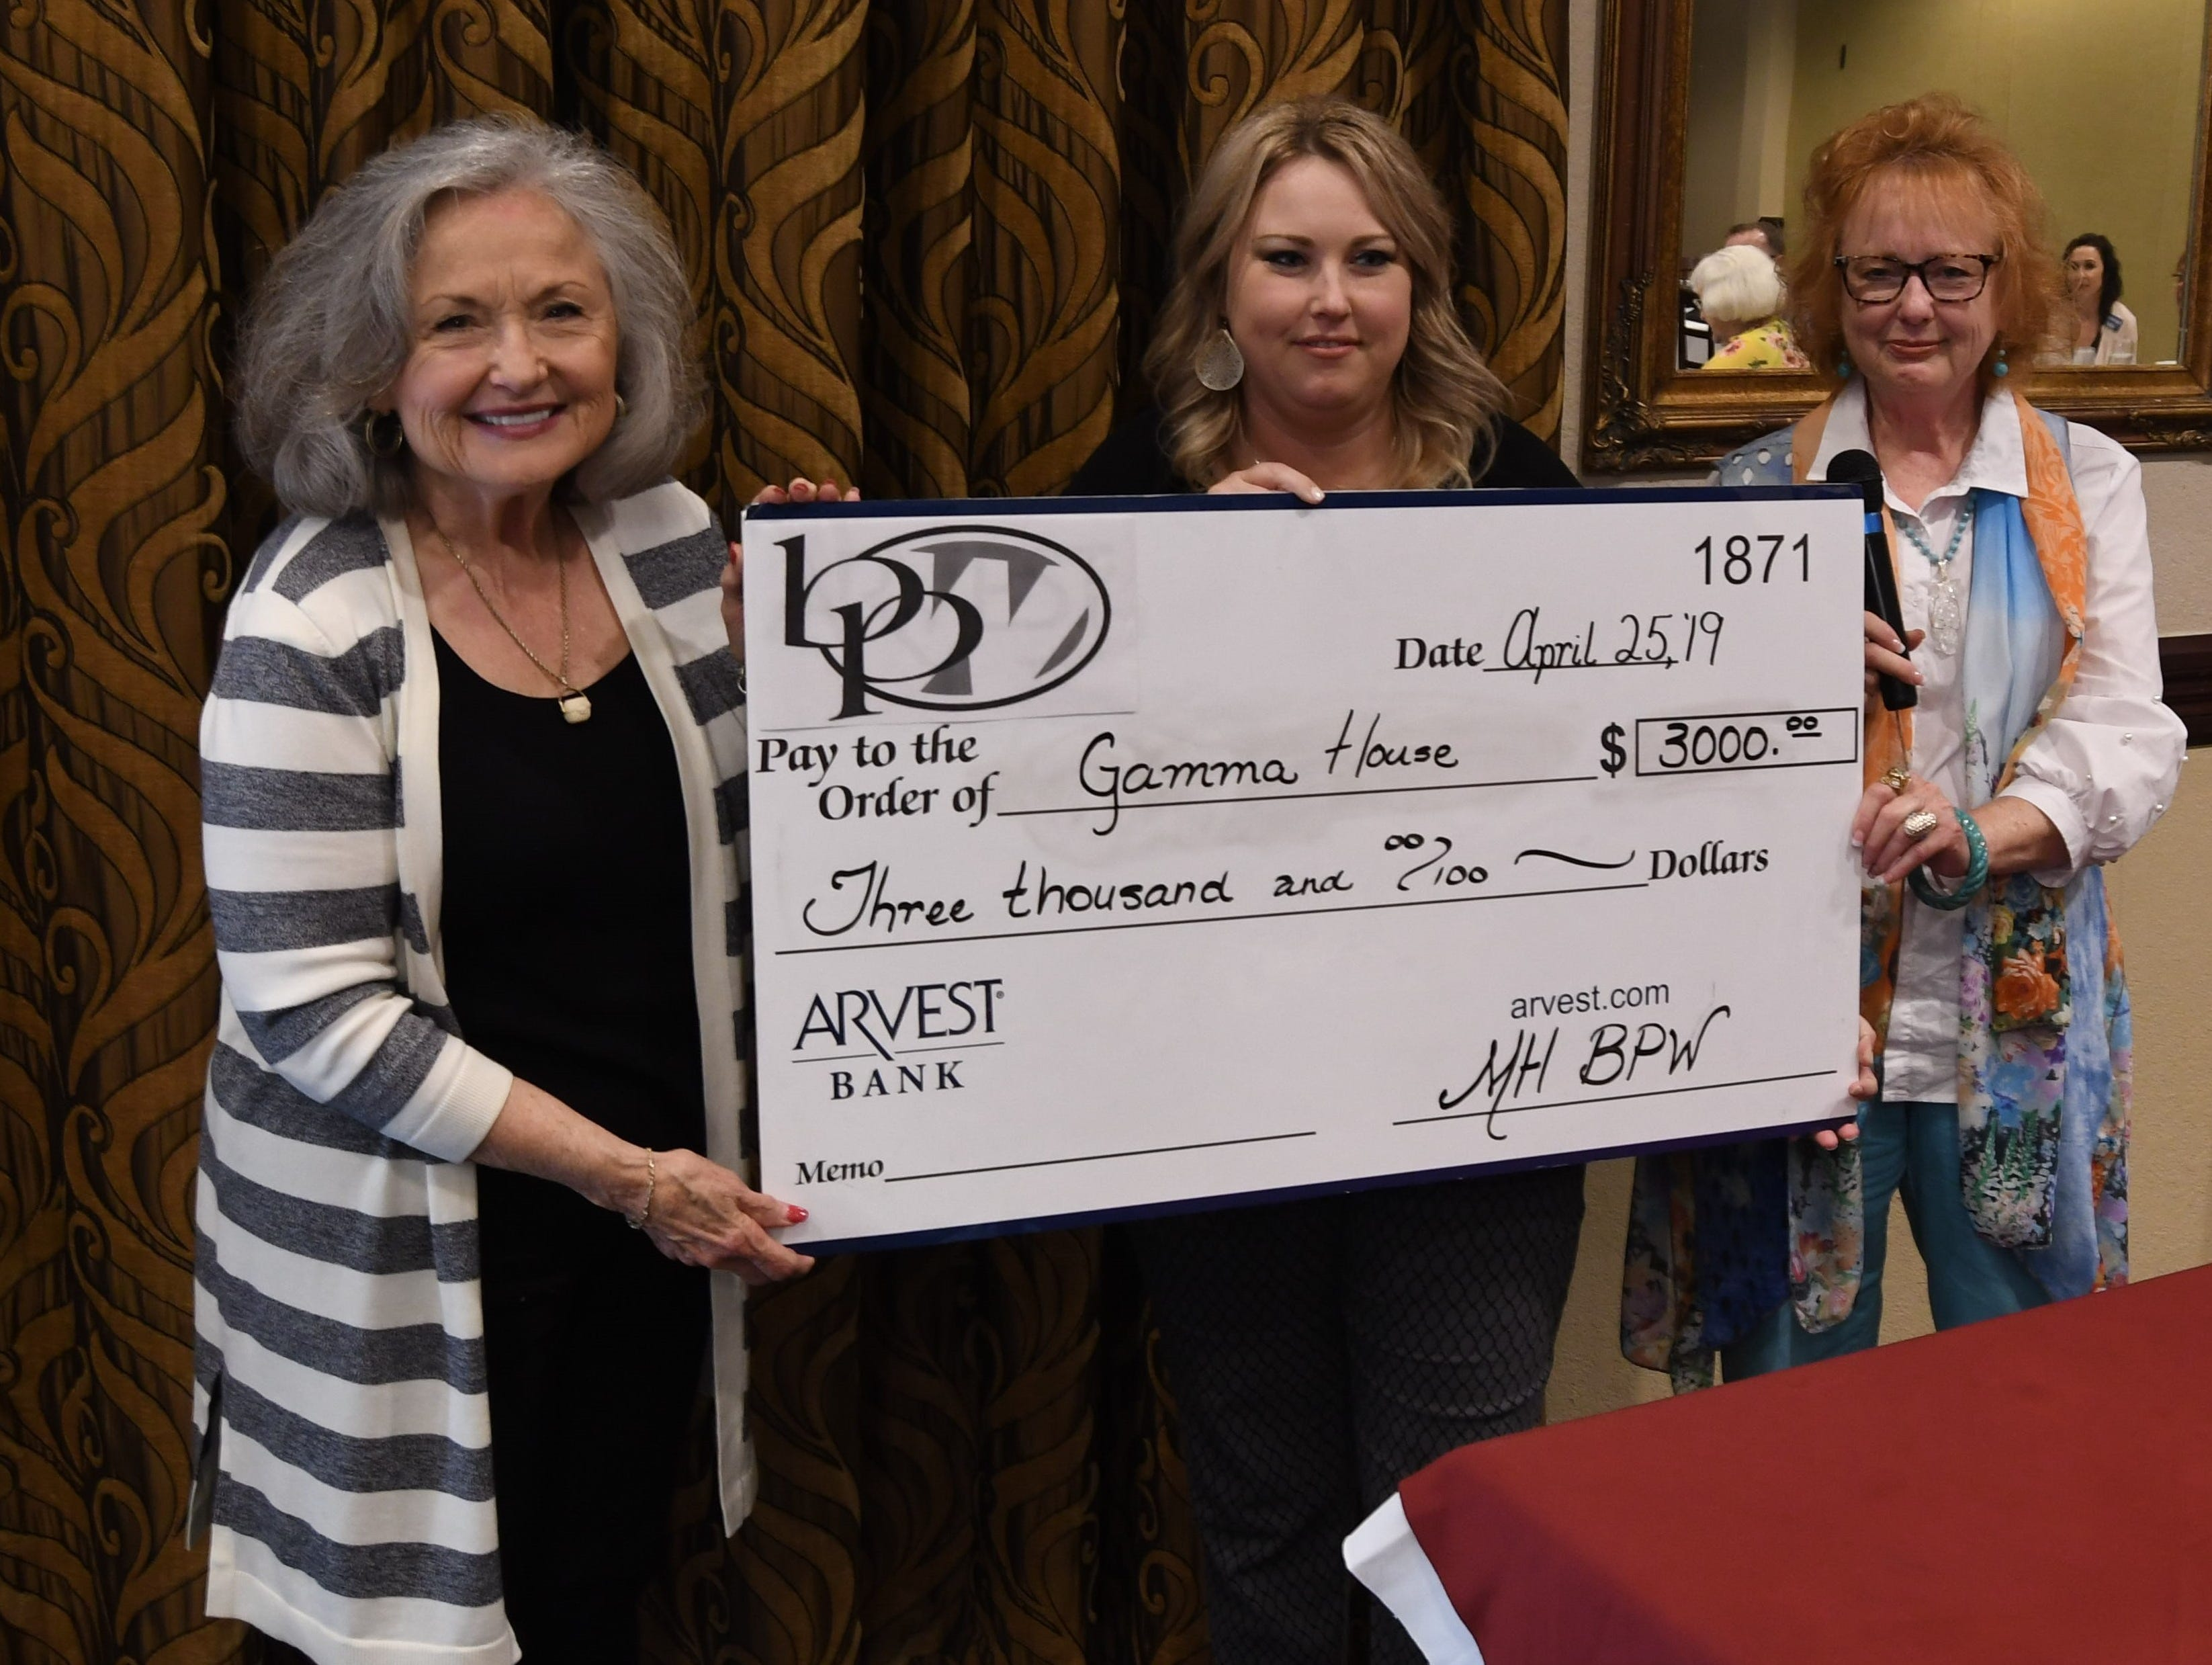 Judy Strother (left) accepts a check for $3,000 from Mountain Home Business & Professional Women president Ashley Hambelton and vice president Lucinda Blair on behalf of Gamma House.